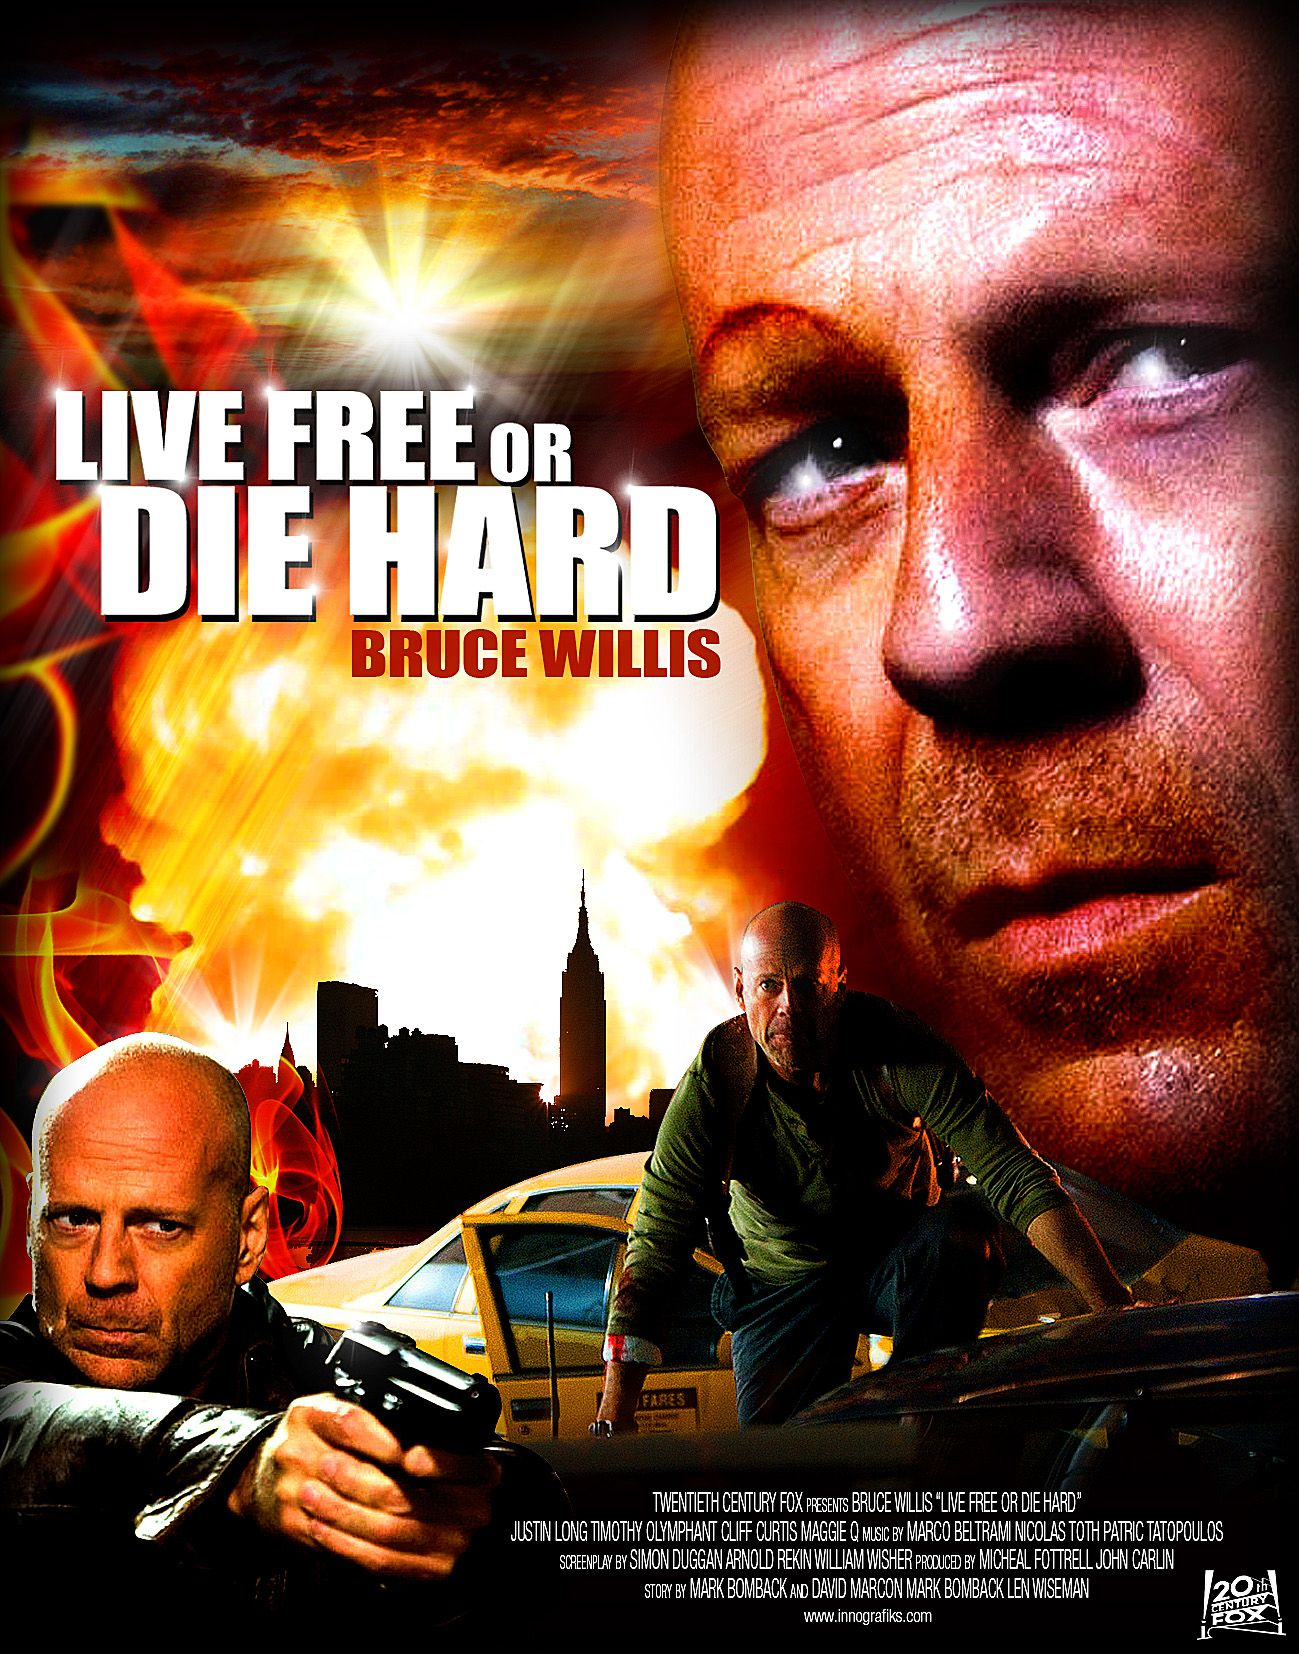 Live Free or Die Hard movie poster  Movies I like  Hard movie Movie posters Adventure Movies